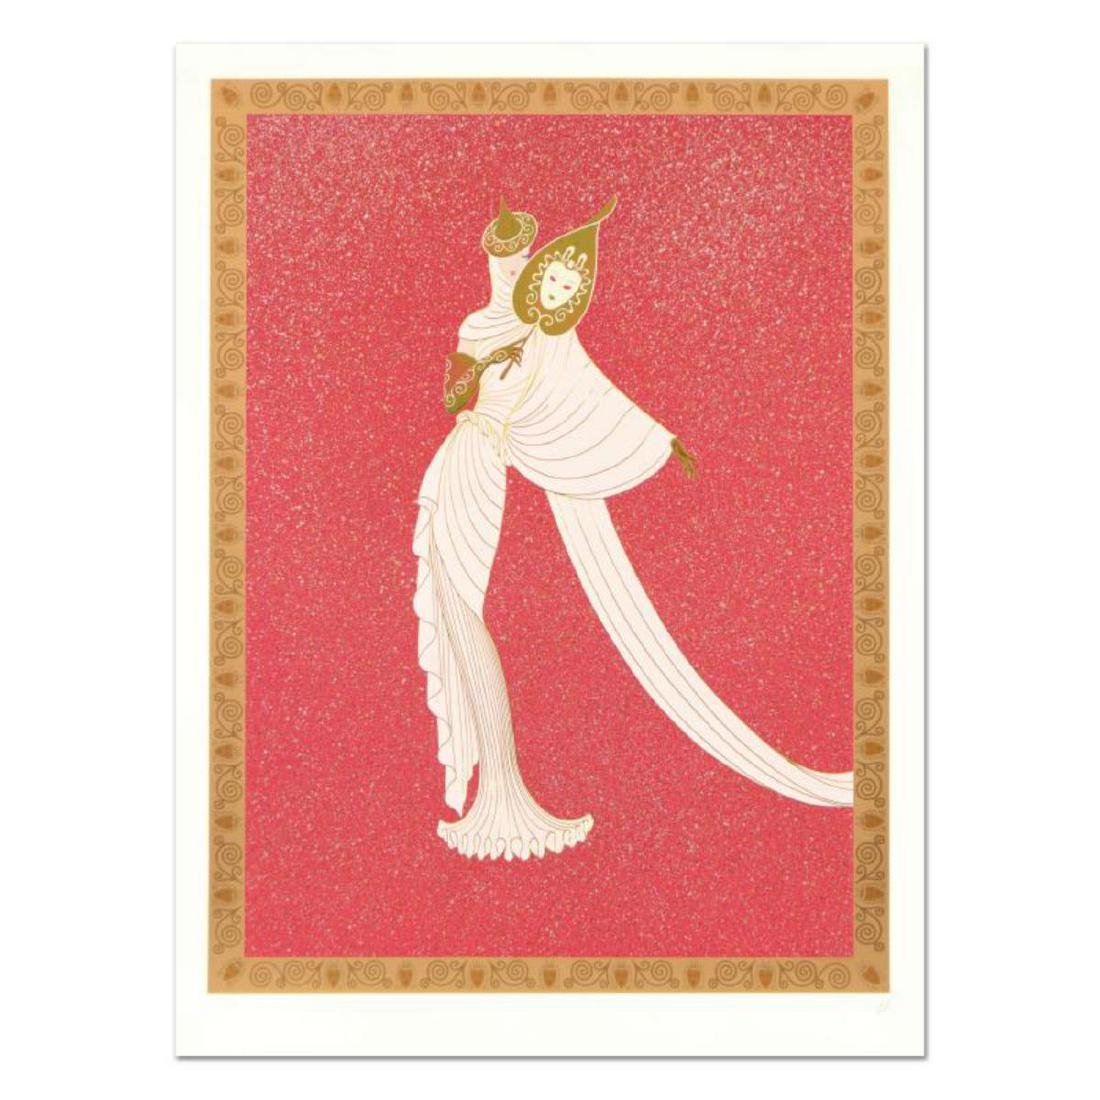 "Erte (1892-1990), ""Tanagra Red"" Limited Edition"